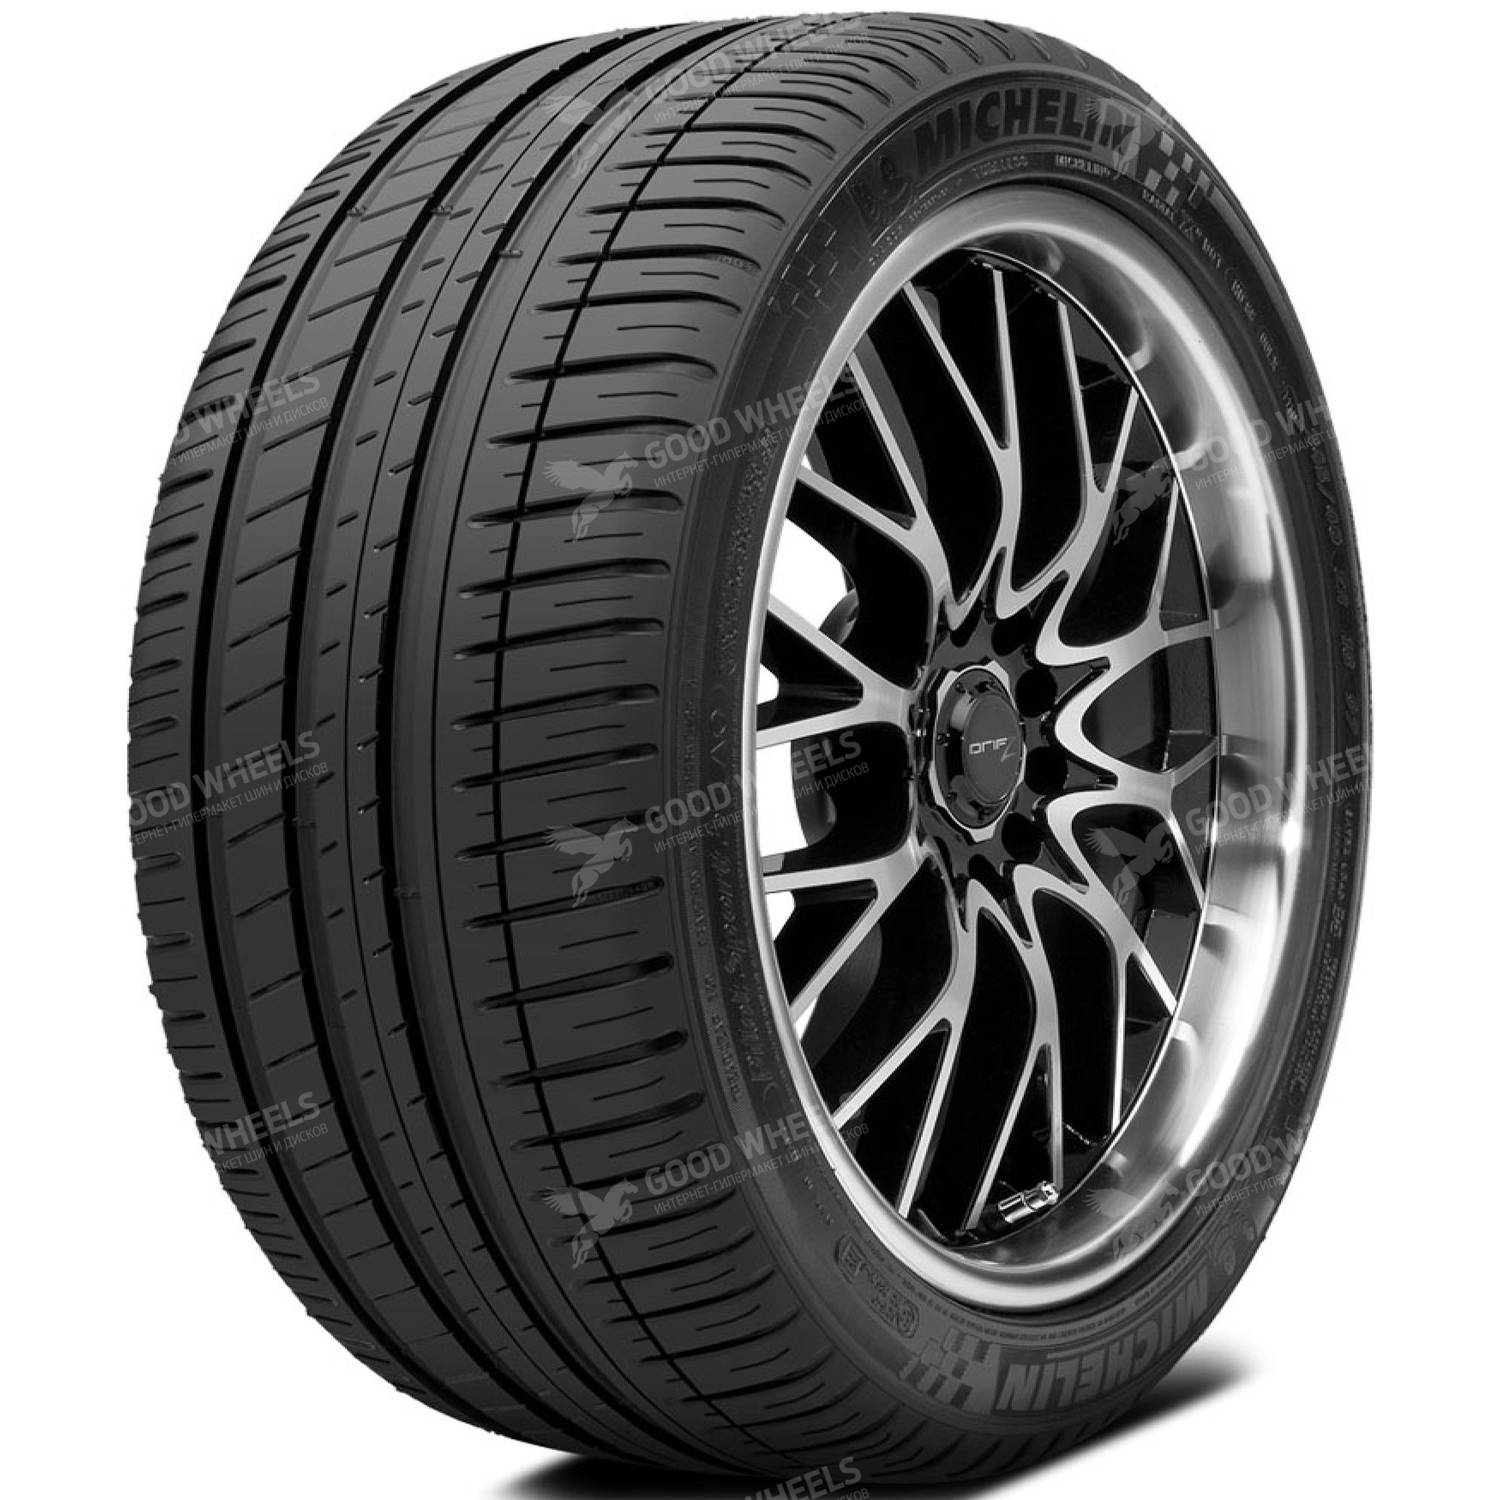 Michelin Pilot Sport 3 (PS3) 245/35 R18 92Y  RunFlat